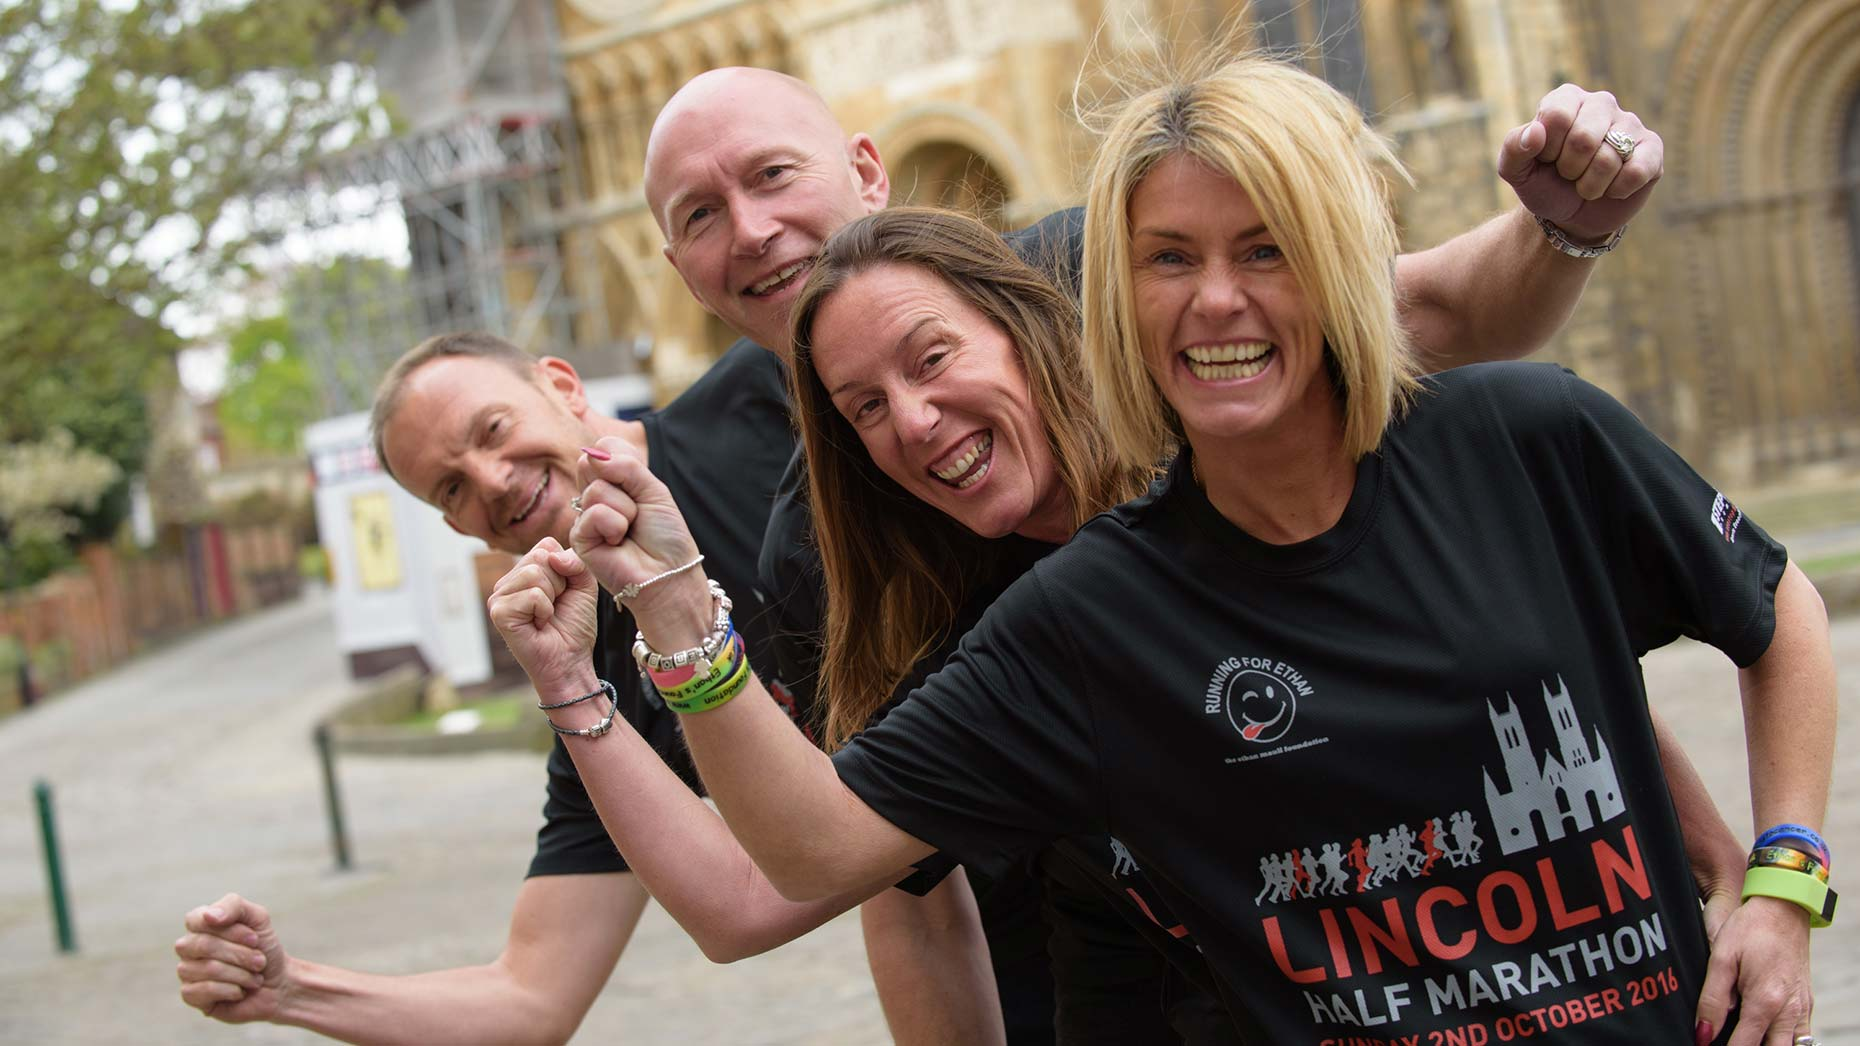 The race is expecting to raise around £250,000 for Ethan's charity. Pictured is organisers Iain and Teresa Hamilton and Ethan's parents Sam and Darren. Photo: Steve Smailes for The Lincolnite.